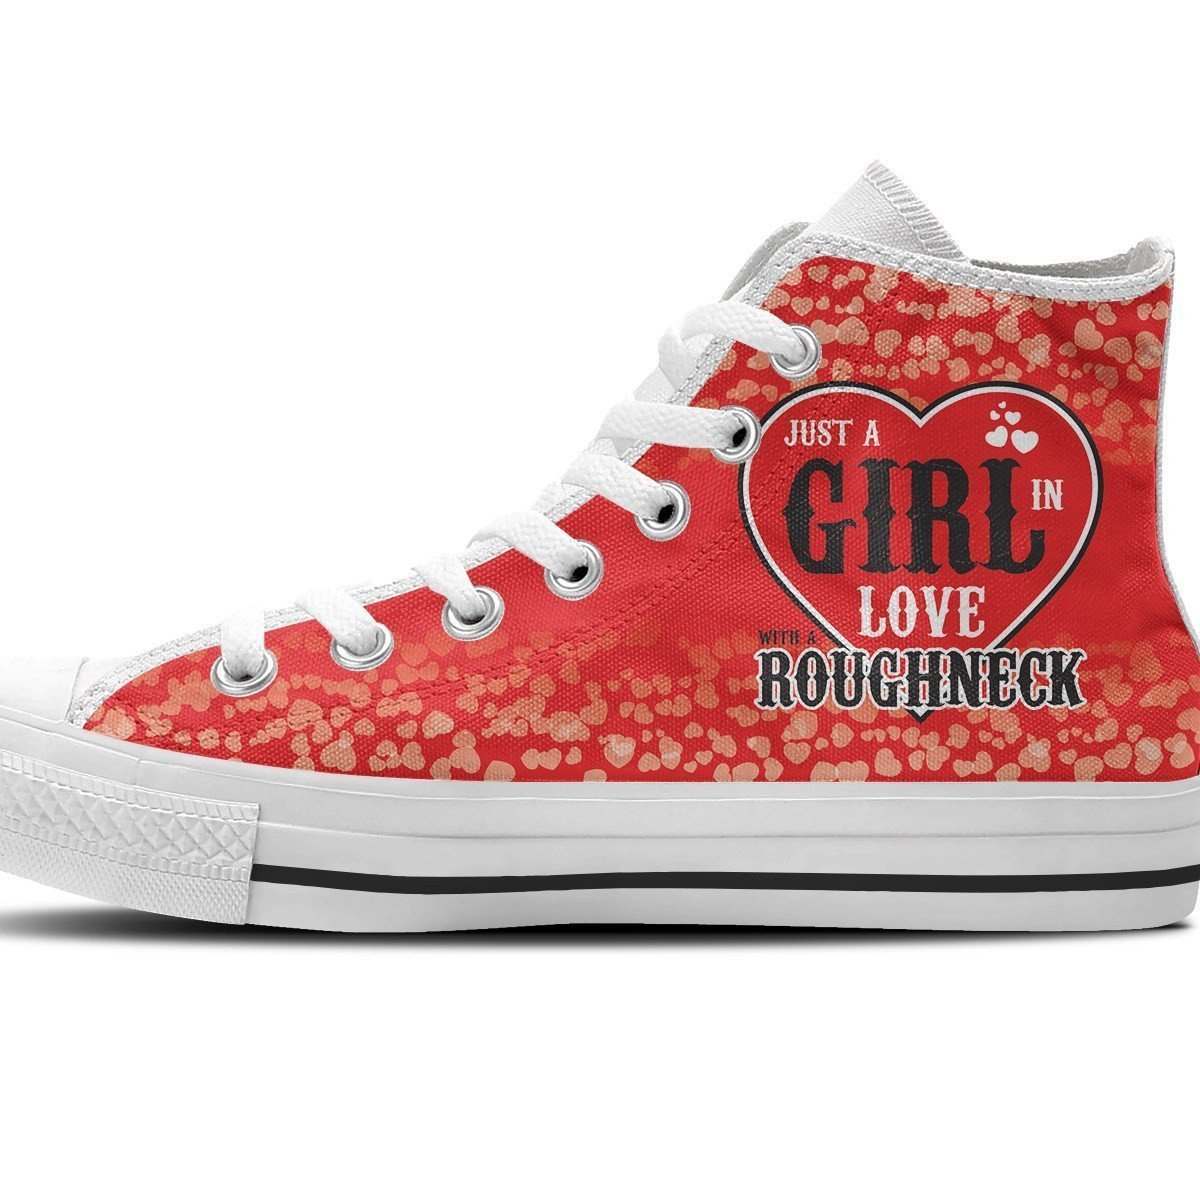 roughneck girl ladies high top sneakers